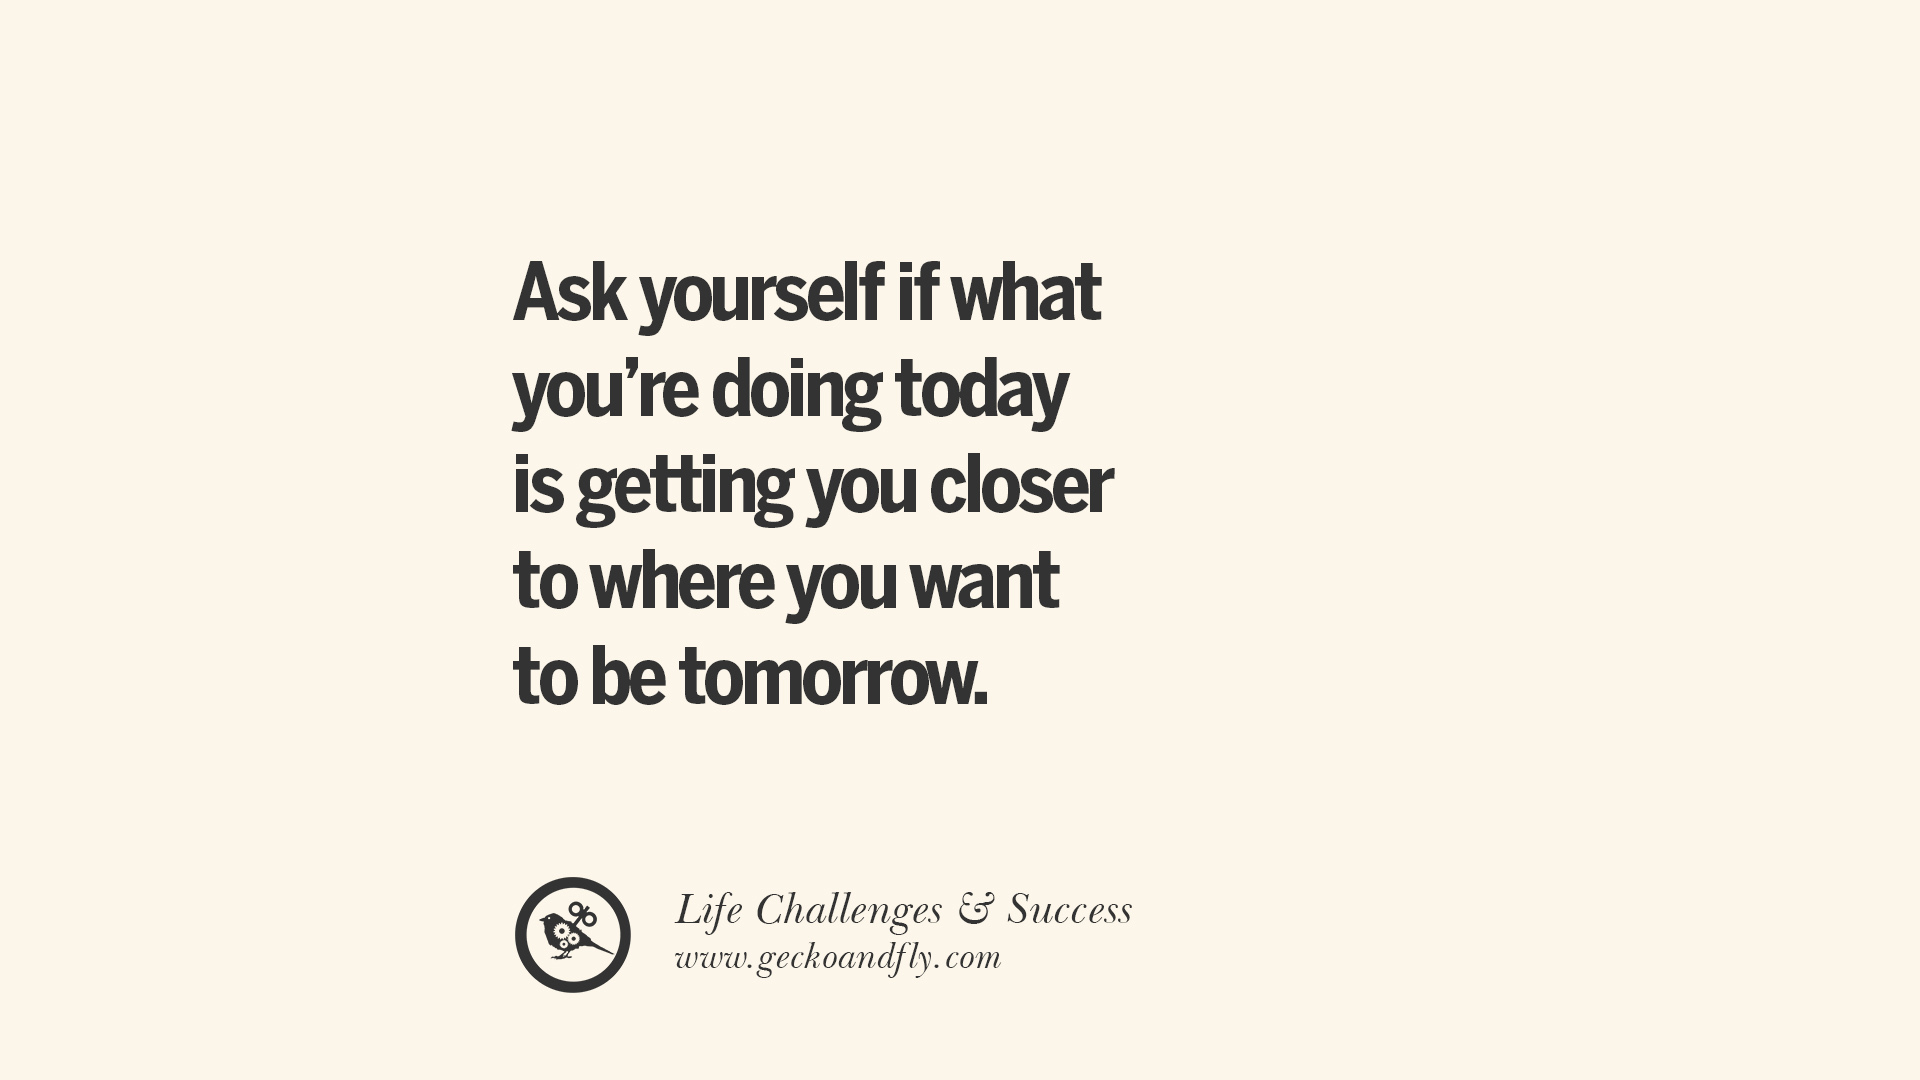 Today Quotes About Life 36 Inspirational Quotes About Life Challenges And The Pursuit Of